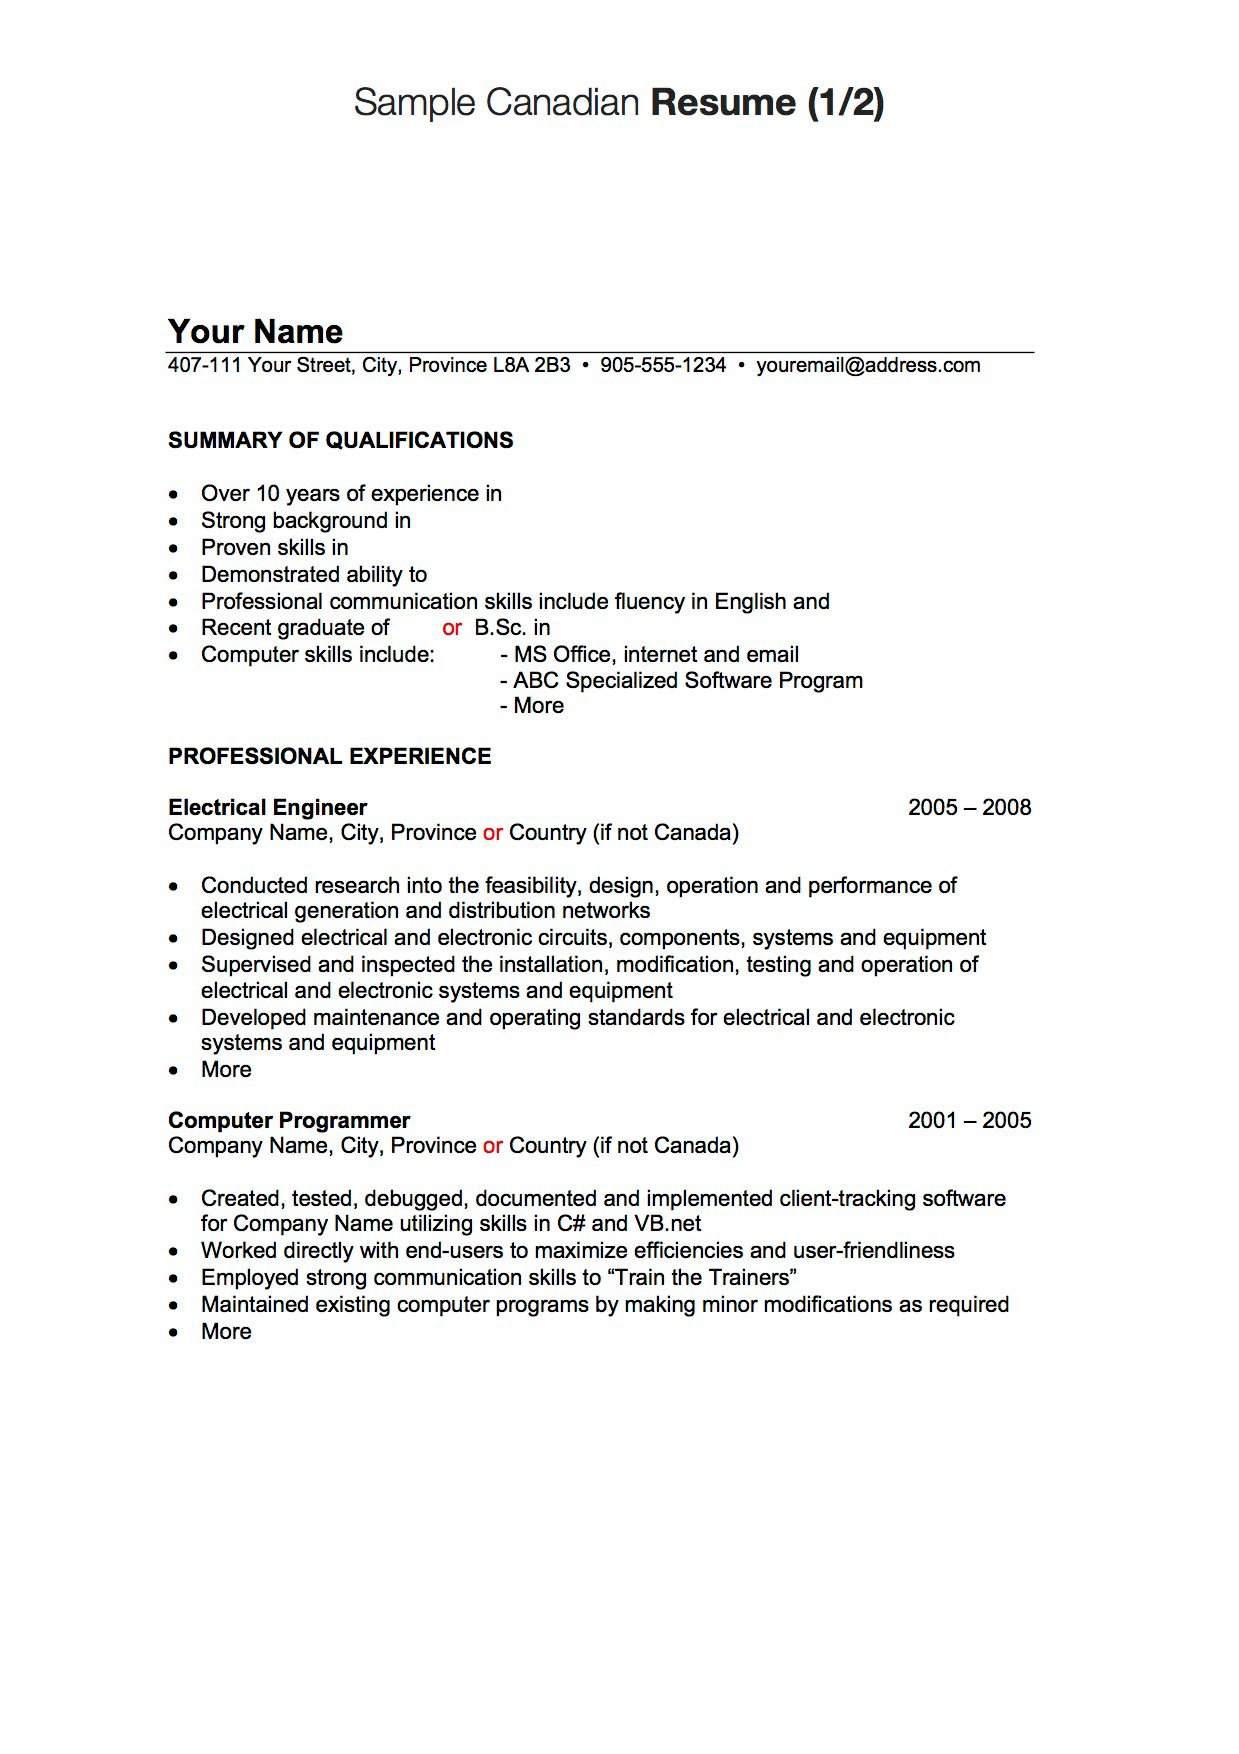 Canadian resume writing companies